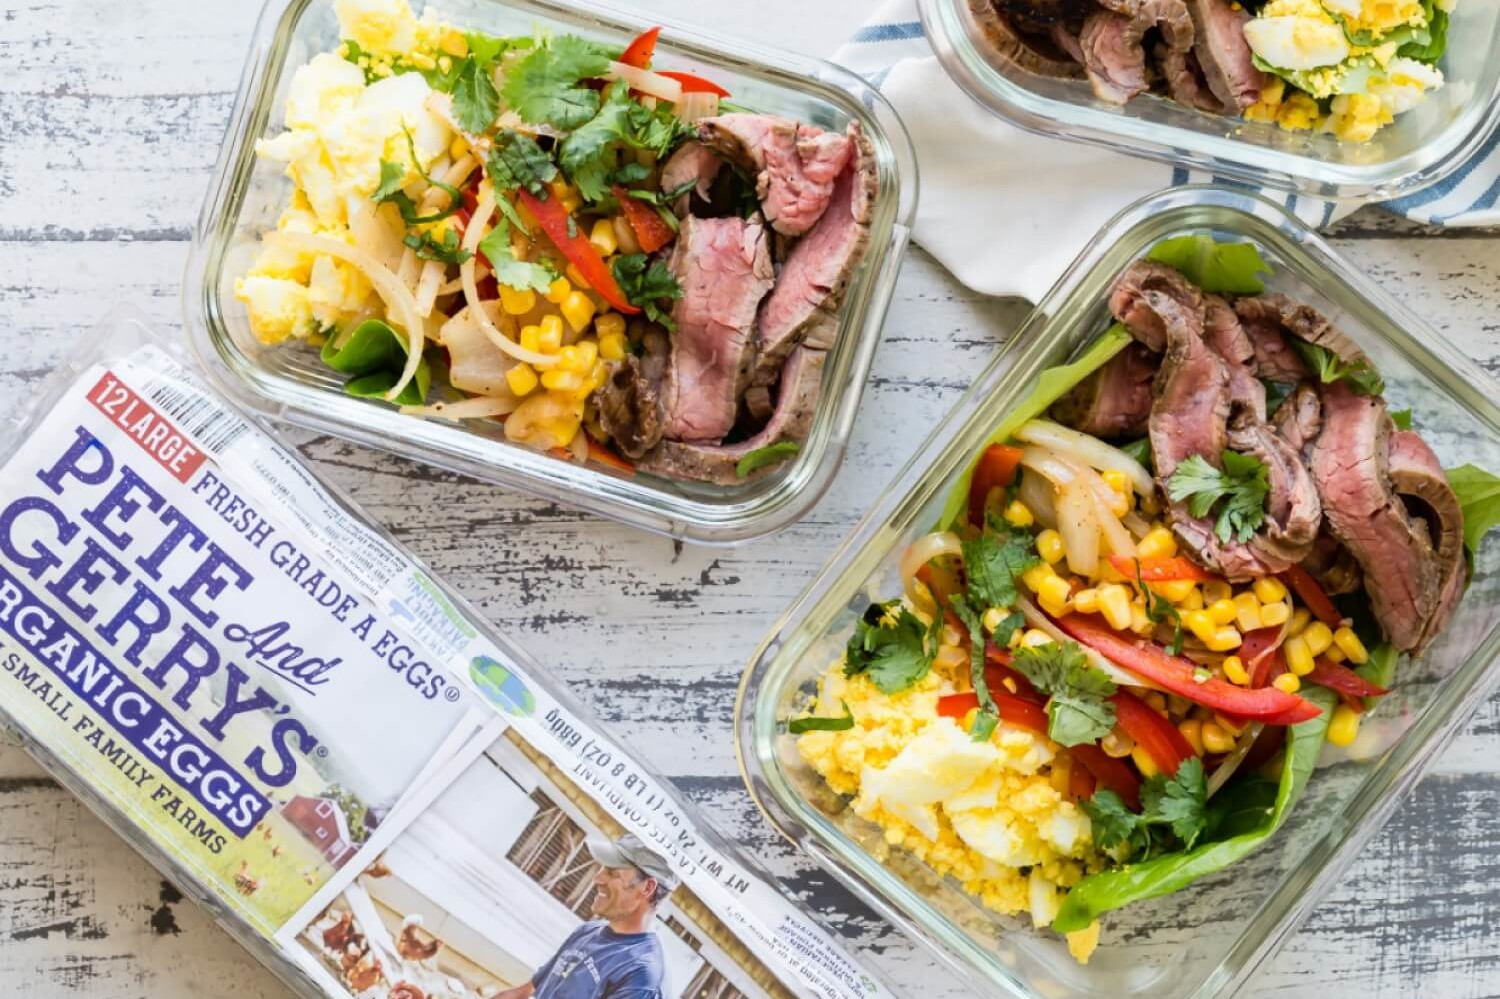 These low-carb fajita bowls are great for a make-ahead lunch or dinner. These bowls feature flank steak, bell peppers, cilantro, crumbled organic eggs, and sweet corn. | peteandgerrys.com